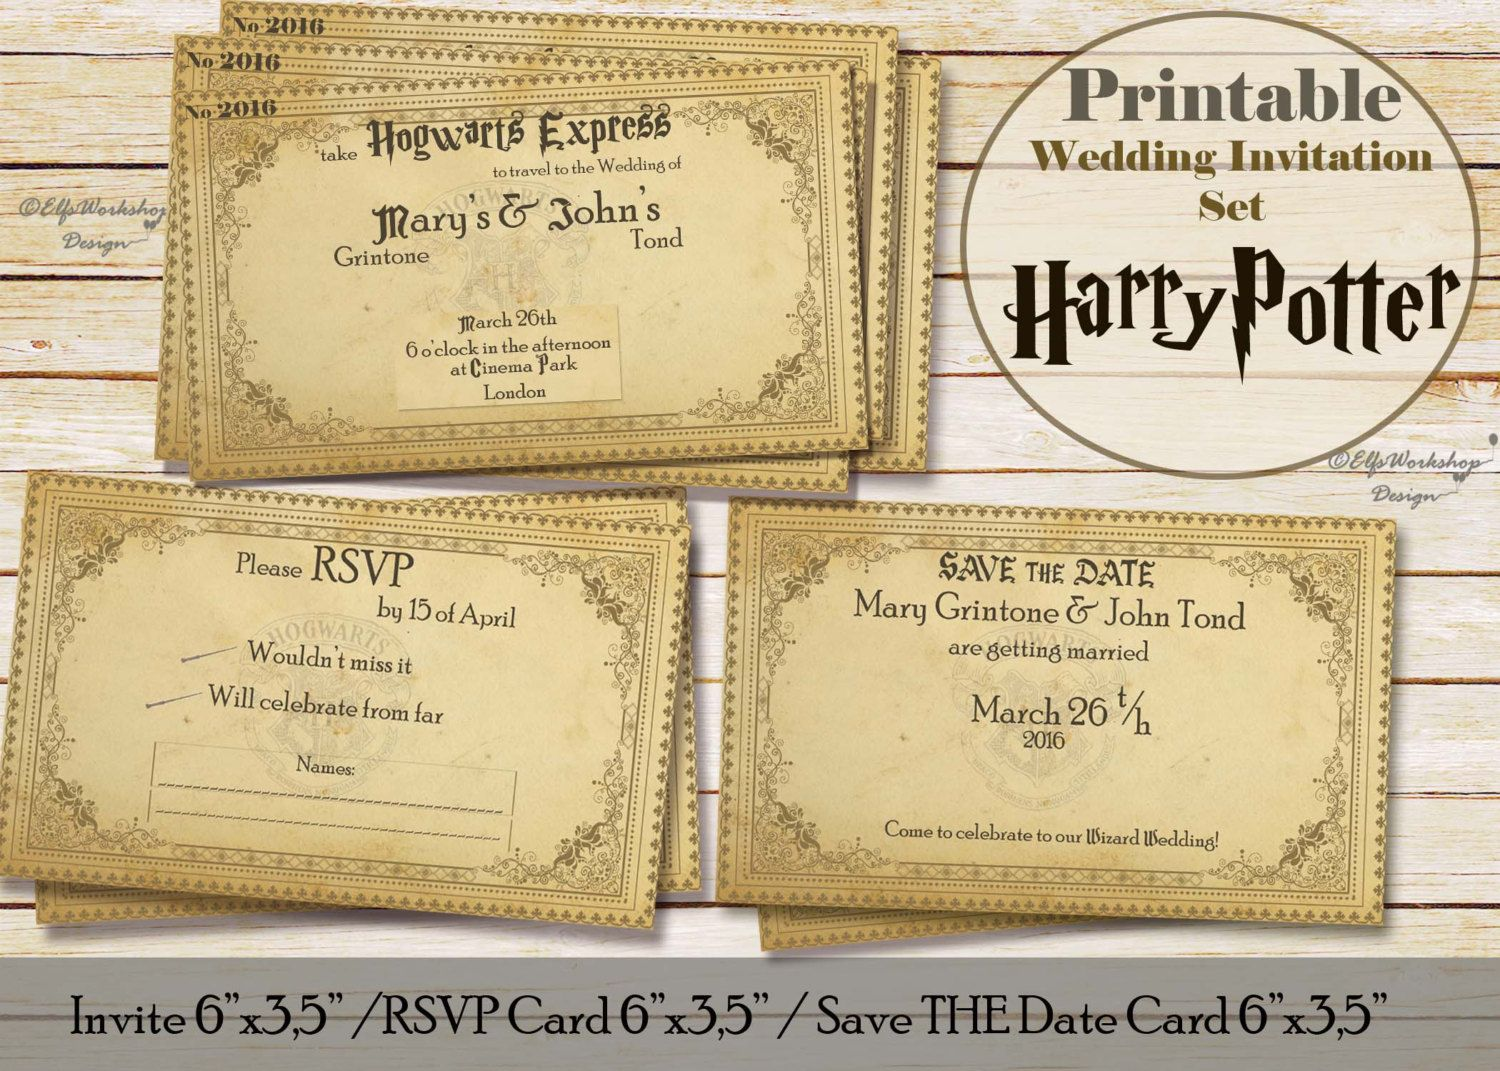 instant download wedding invitation save the date and rsvp card with harry potter theme - Harry Potter Wedding Invitations